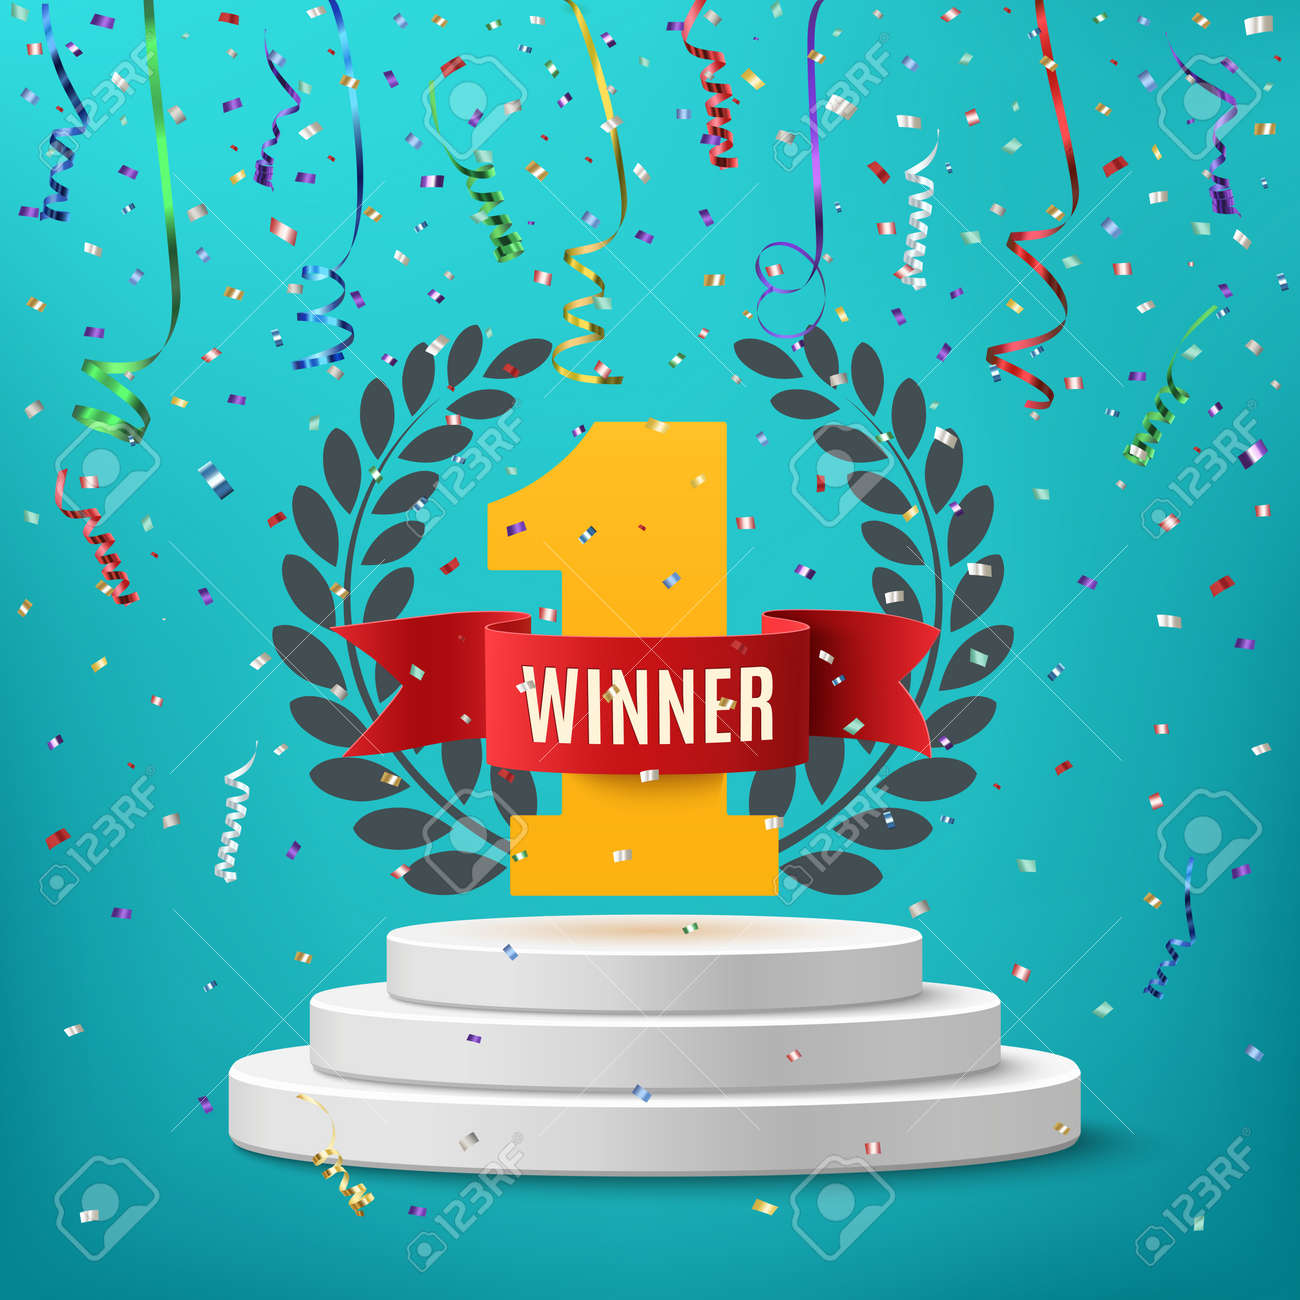 Winner, number one background with red ribbon, olive branch and confetti on round pedestal isolated on blue. Poster or brochure template. illustration. - 56834158